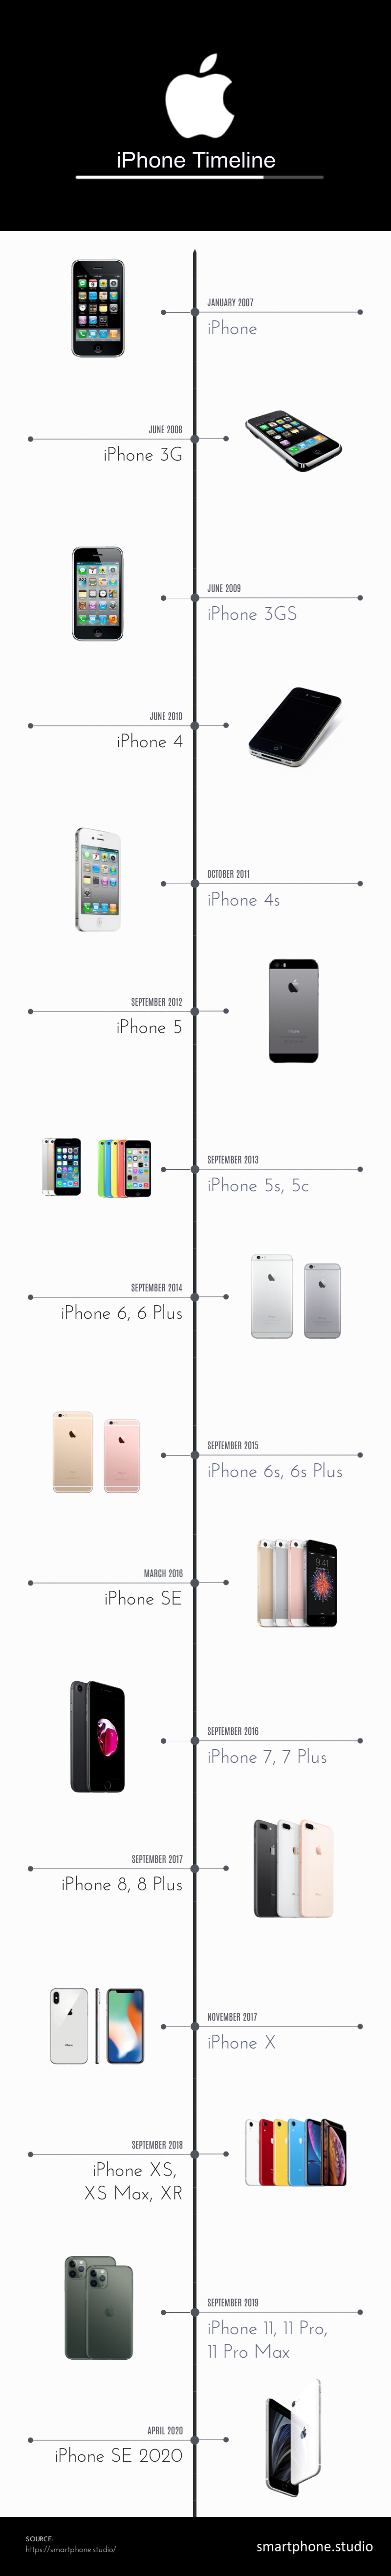 Apple's iPhone Release Timeline